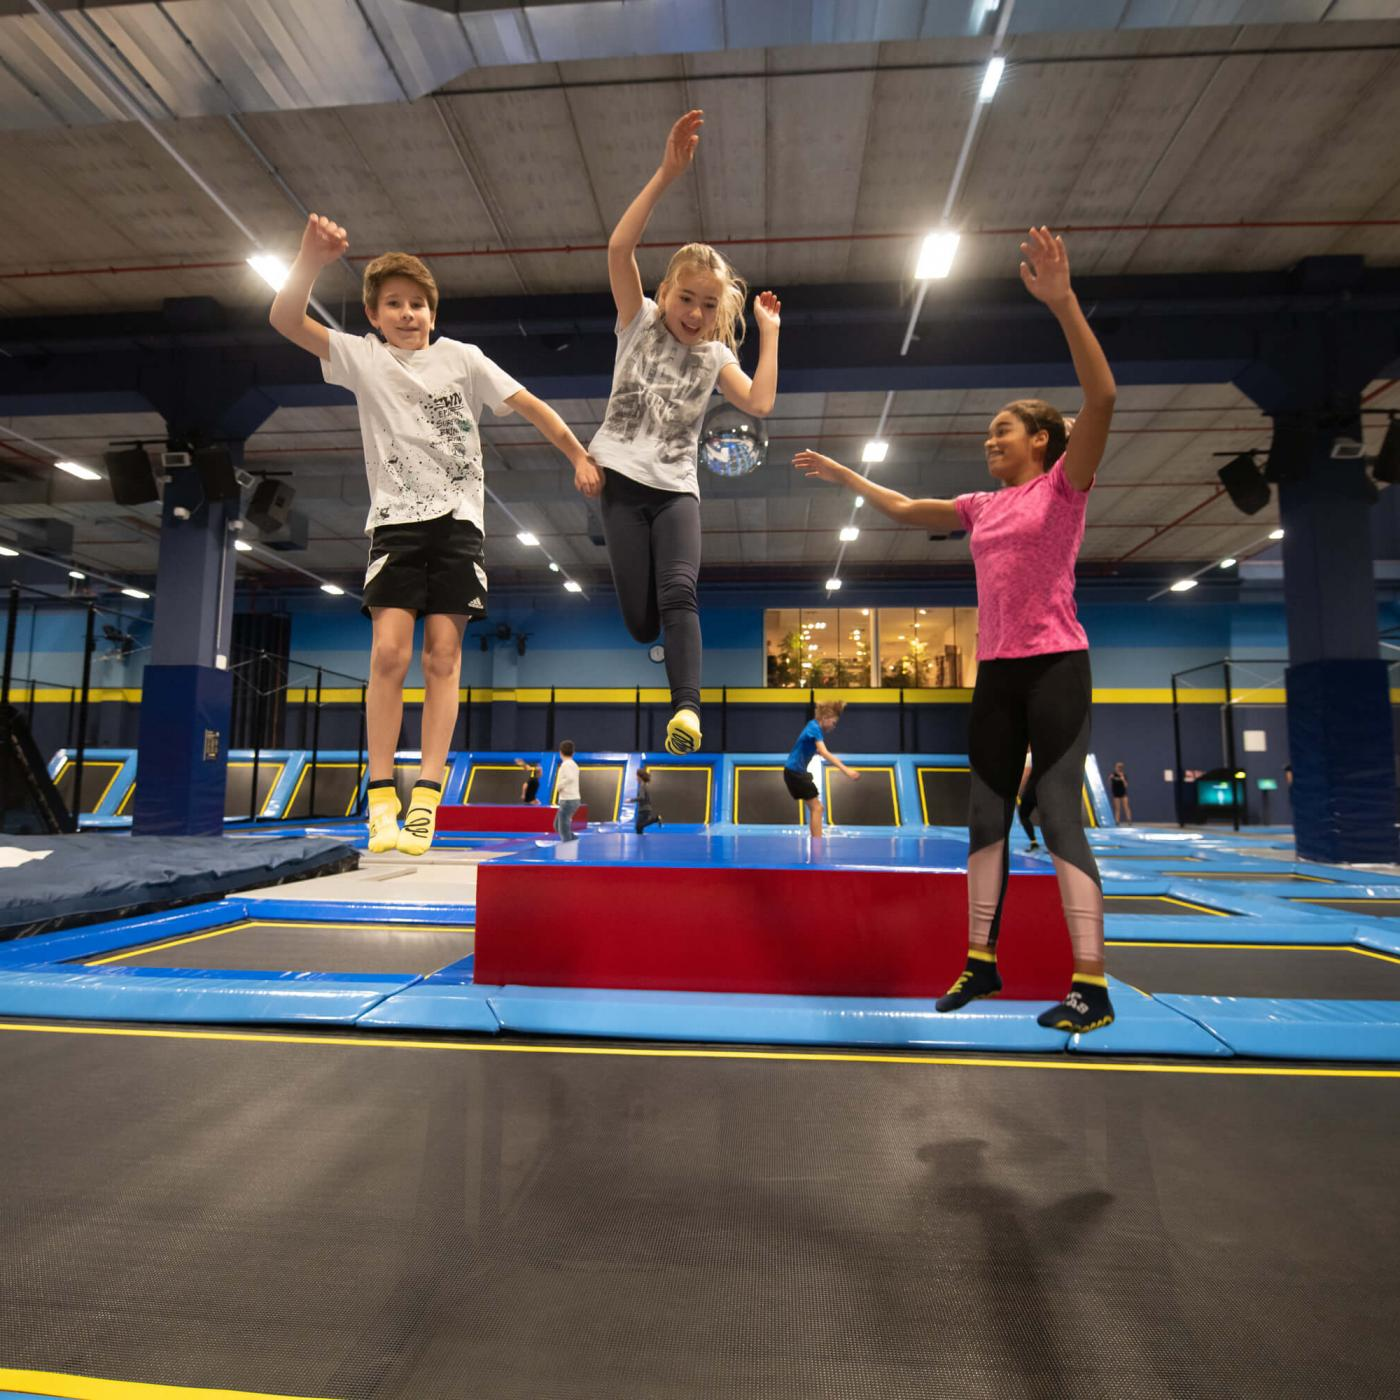 Trampolin-Park im Flip Lab Center in Graz.